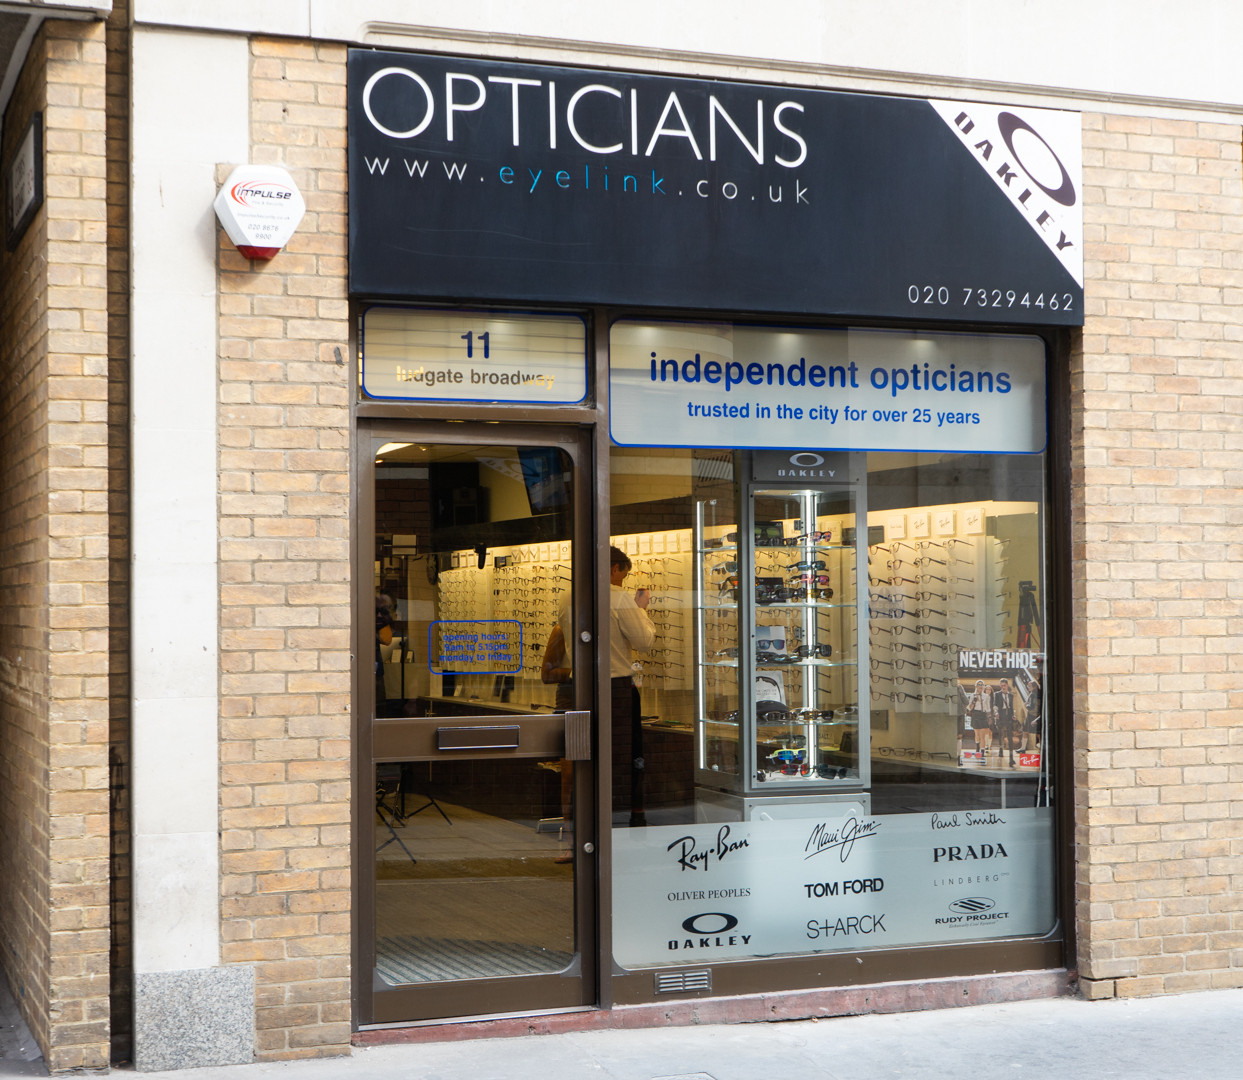 Eyelink Opticians London